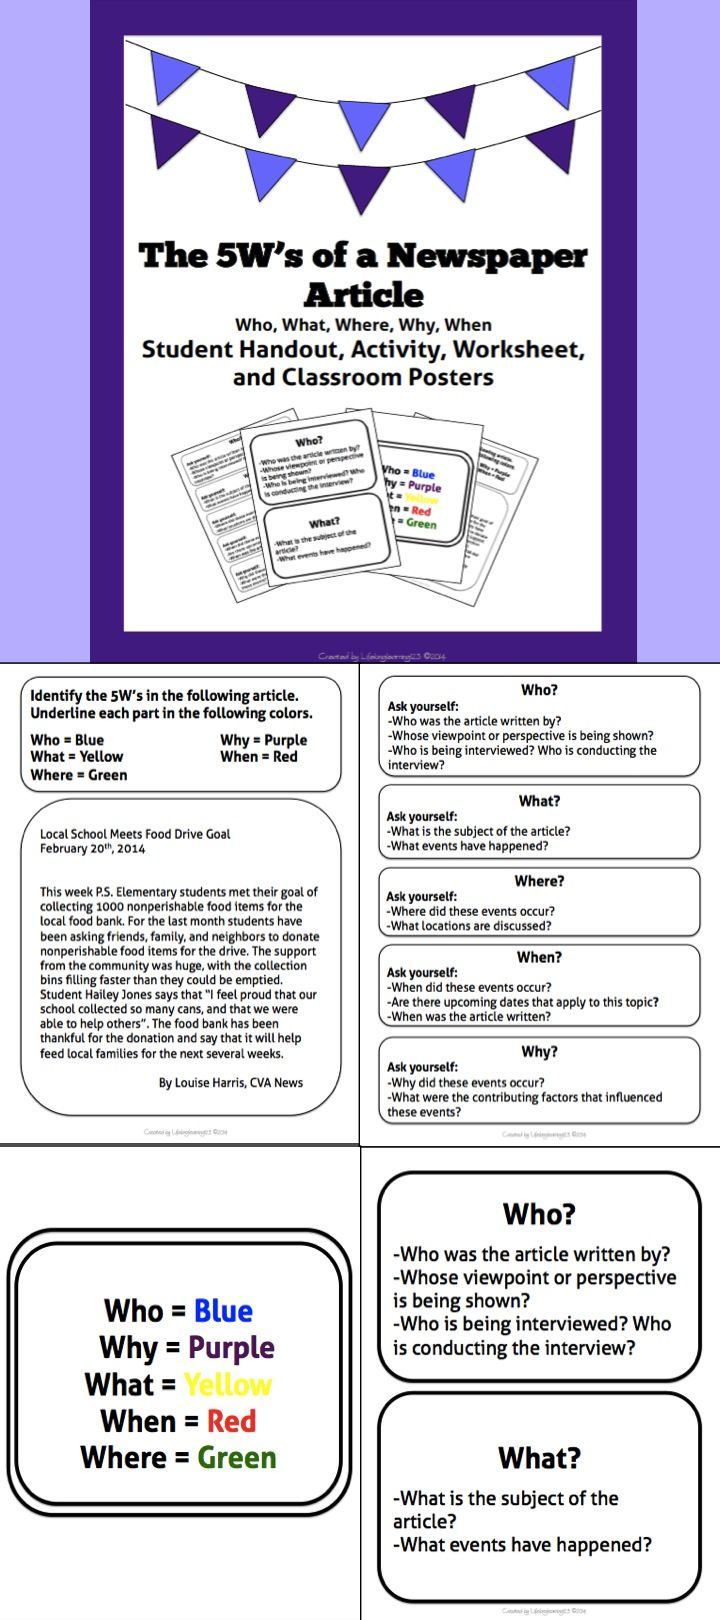 Classroom Handout Ideas ~ The w s of a newspaper article student activity handout